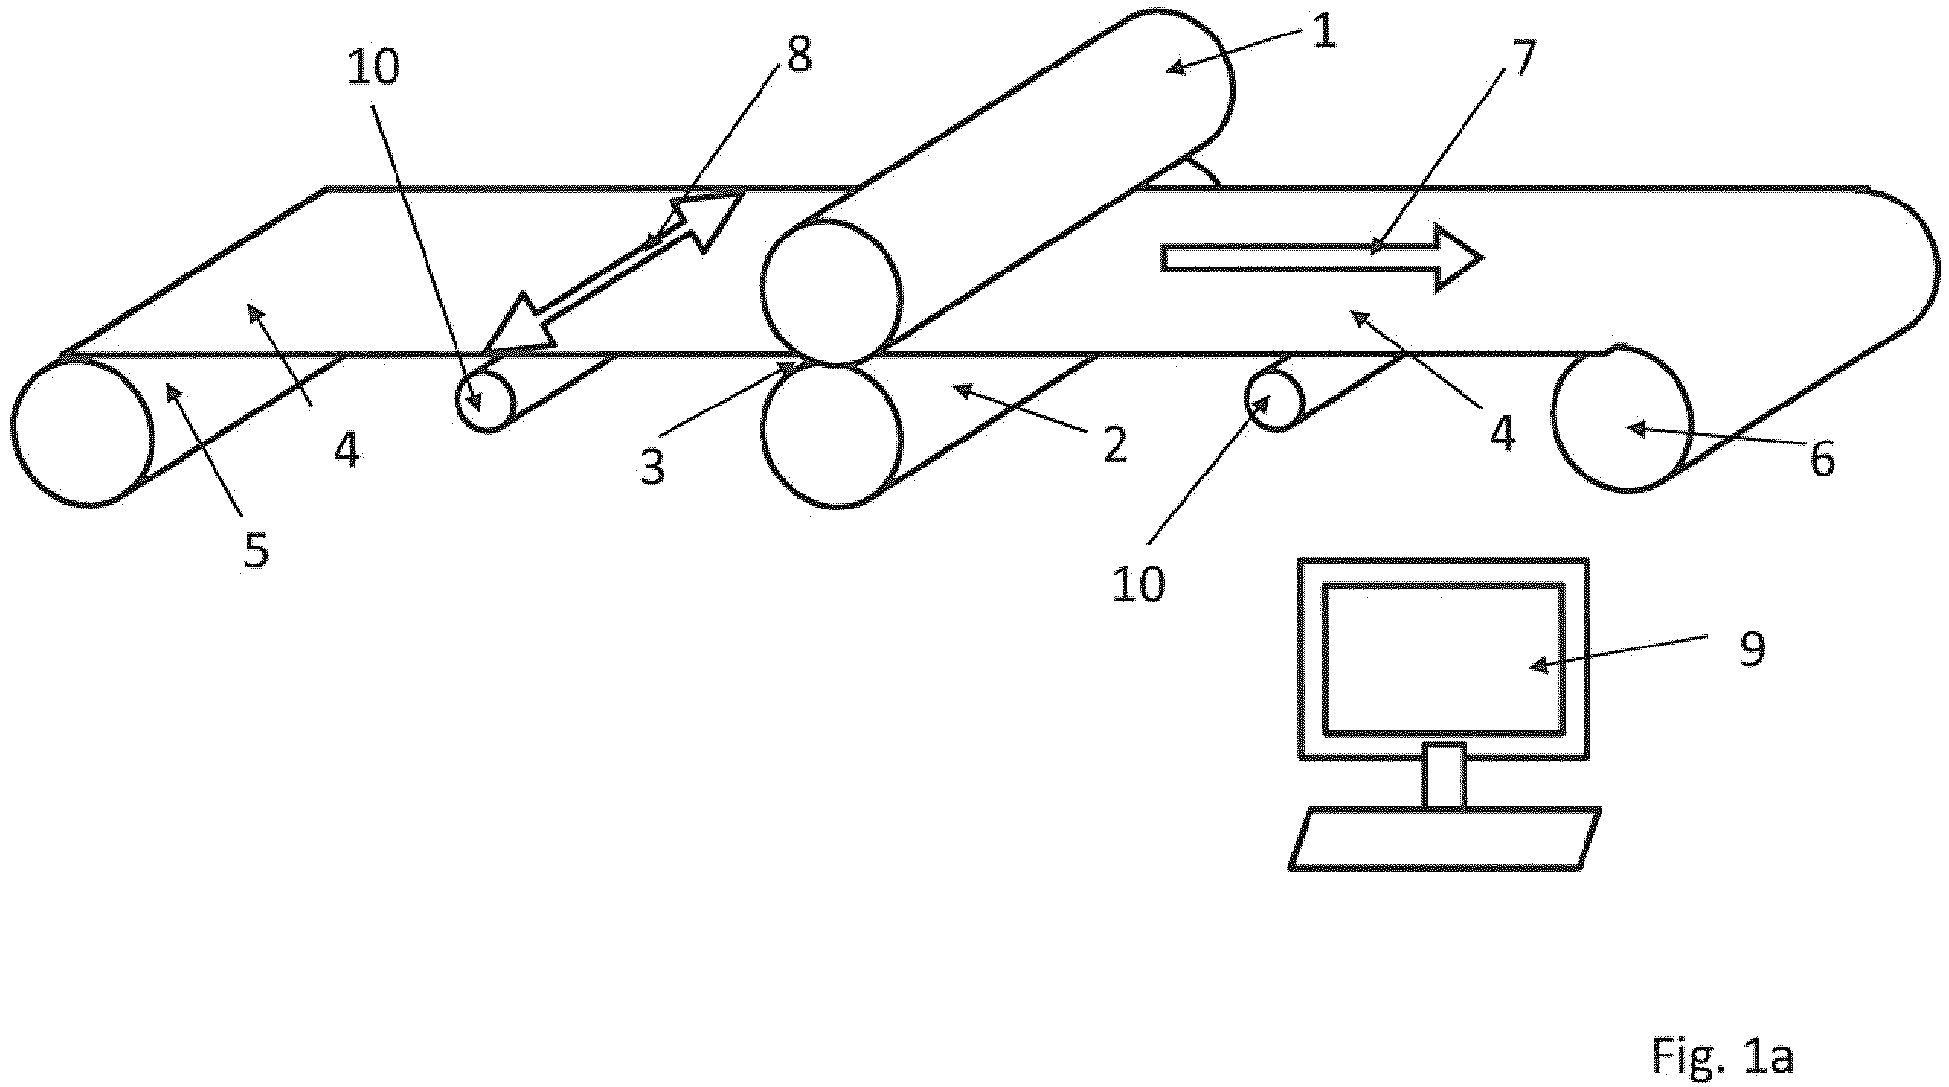 hight resolution of  applied strip tension is specifically controlled so that the from the work rolls 1 2 on the metal strip 4 applied rolling force during the rolling